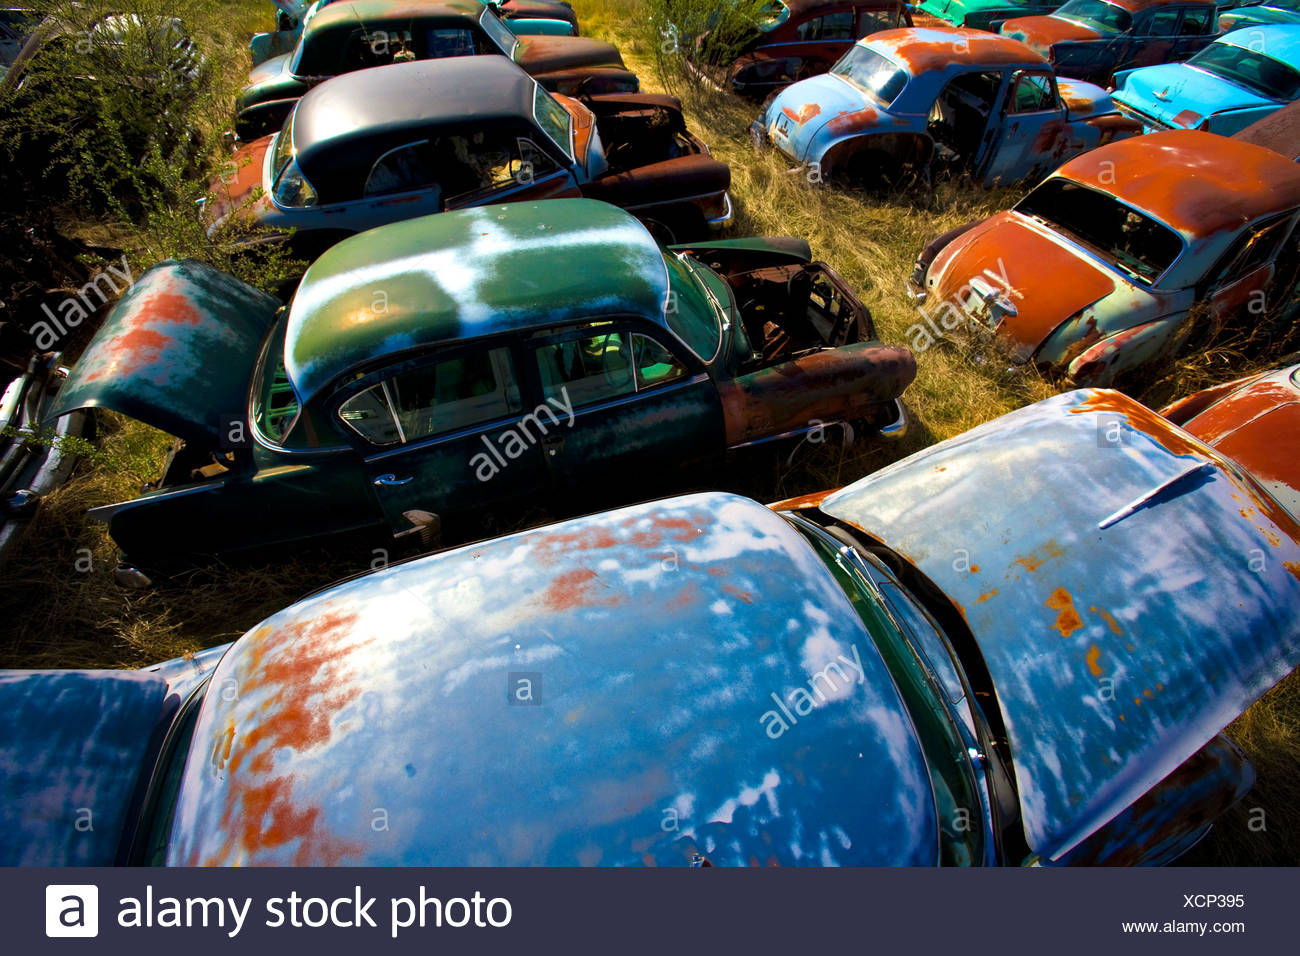 Wrecked Cars Junkyard Stock Photos & Wrecked Cars Junkyard